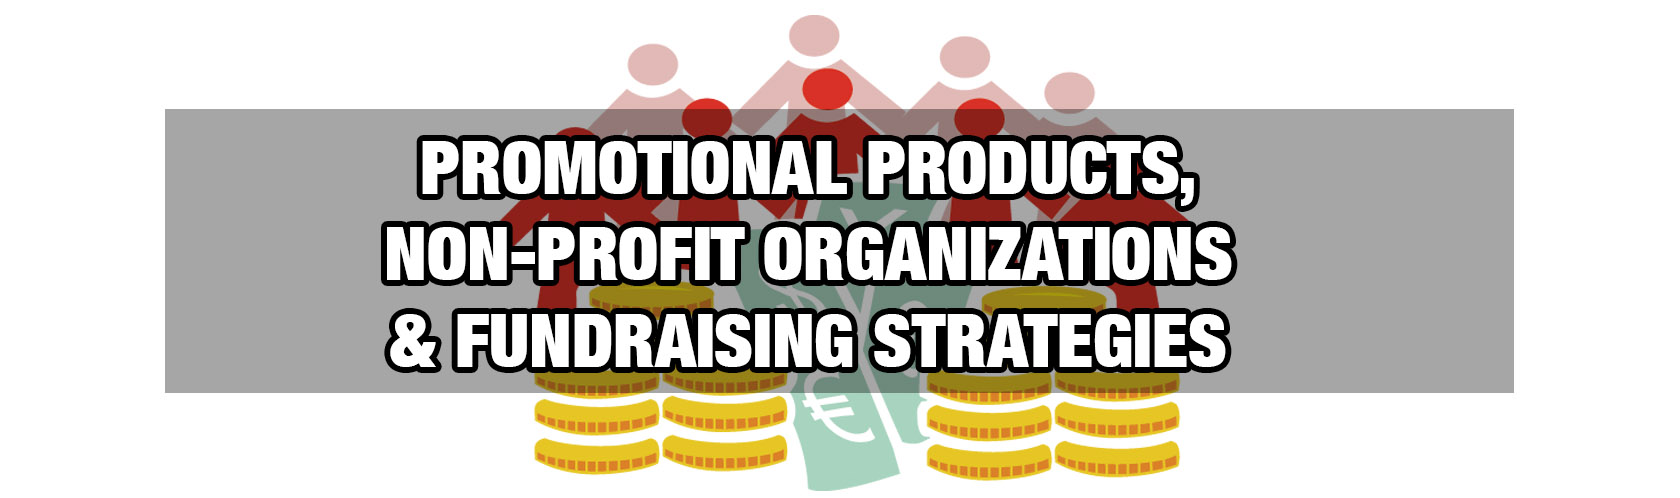 Promotional Products, Non-Profit Organizations and Fundraising Strategies